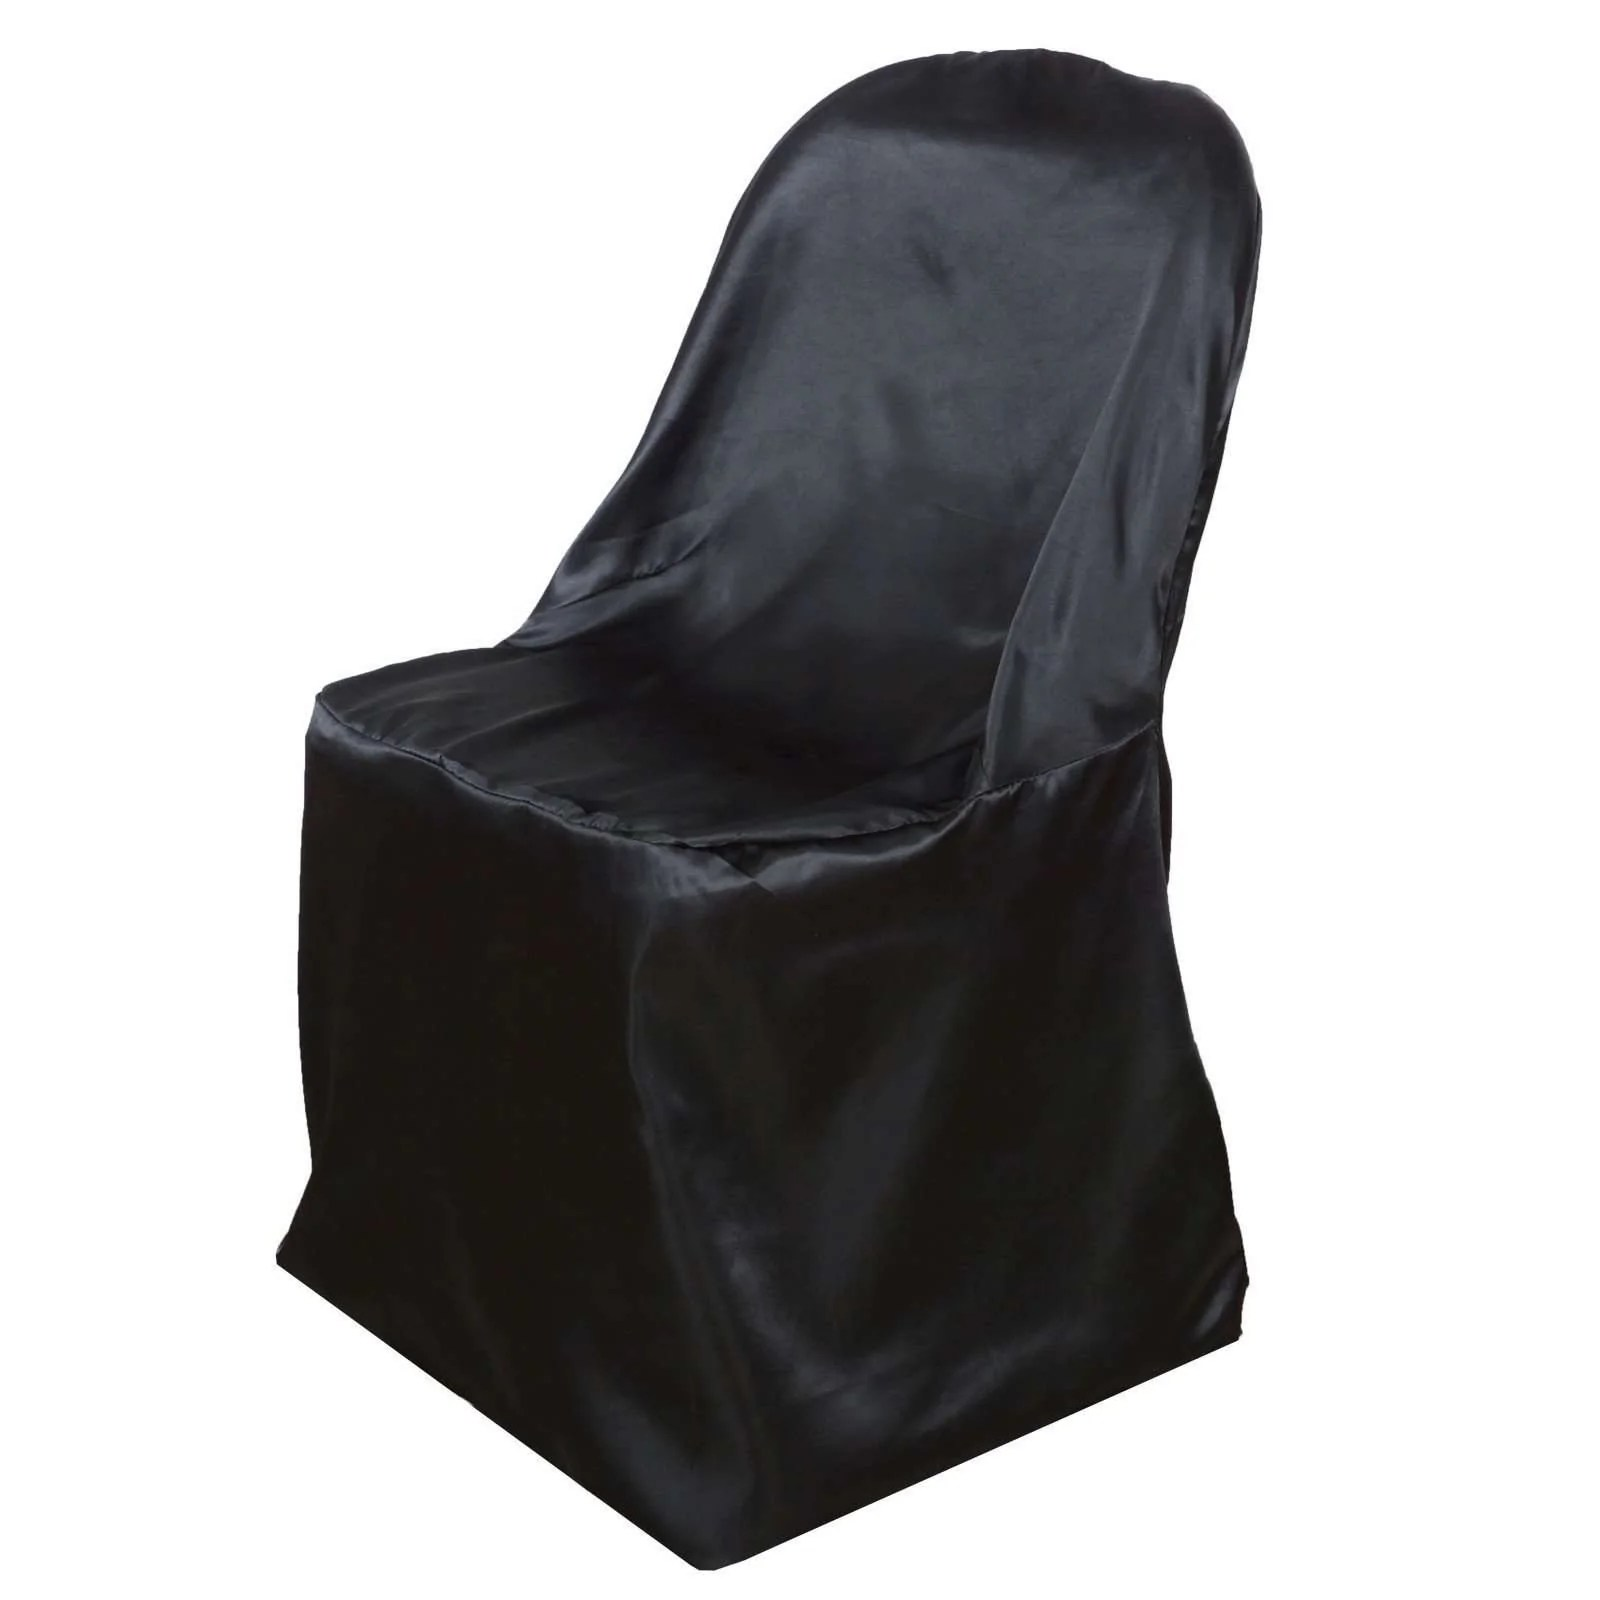 black lifetime chair covers living room chairs walmart wholesale satin folding party wedding event